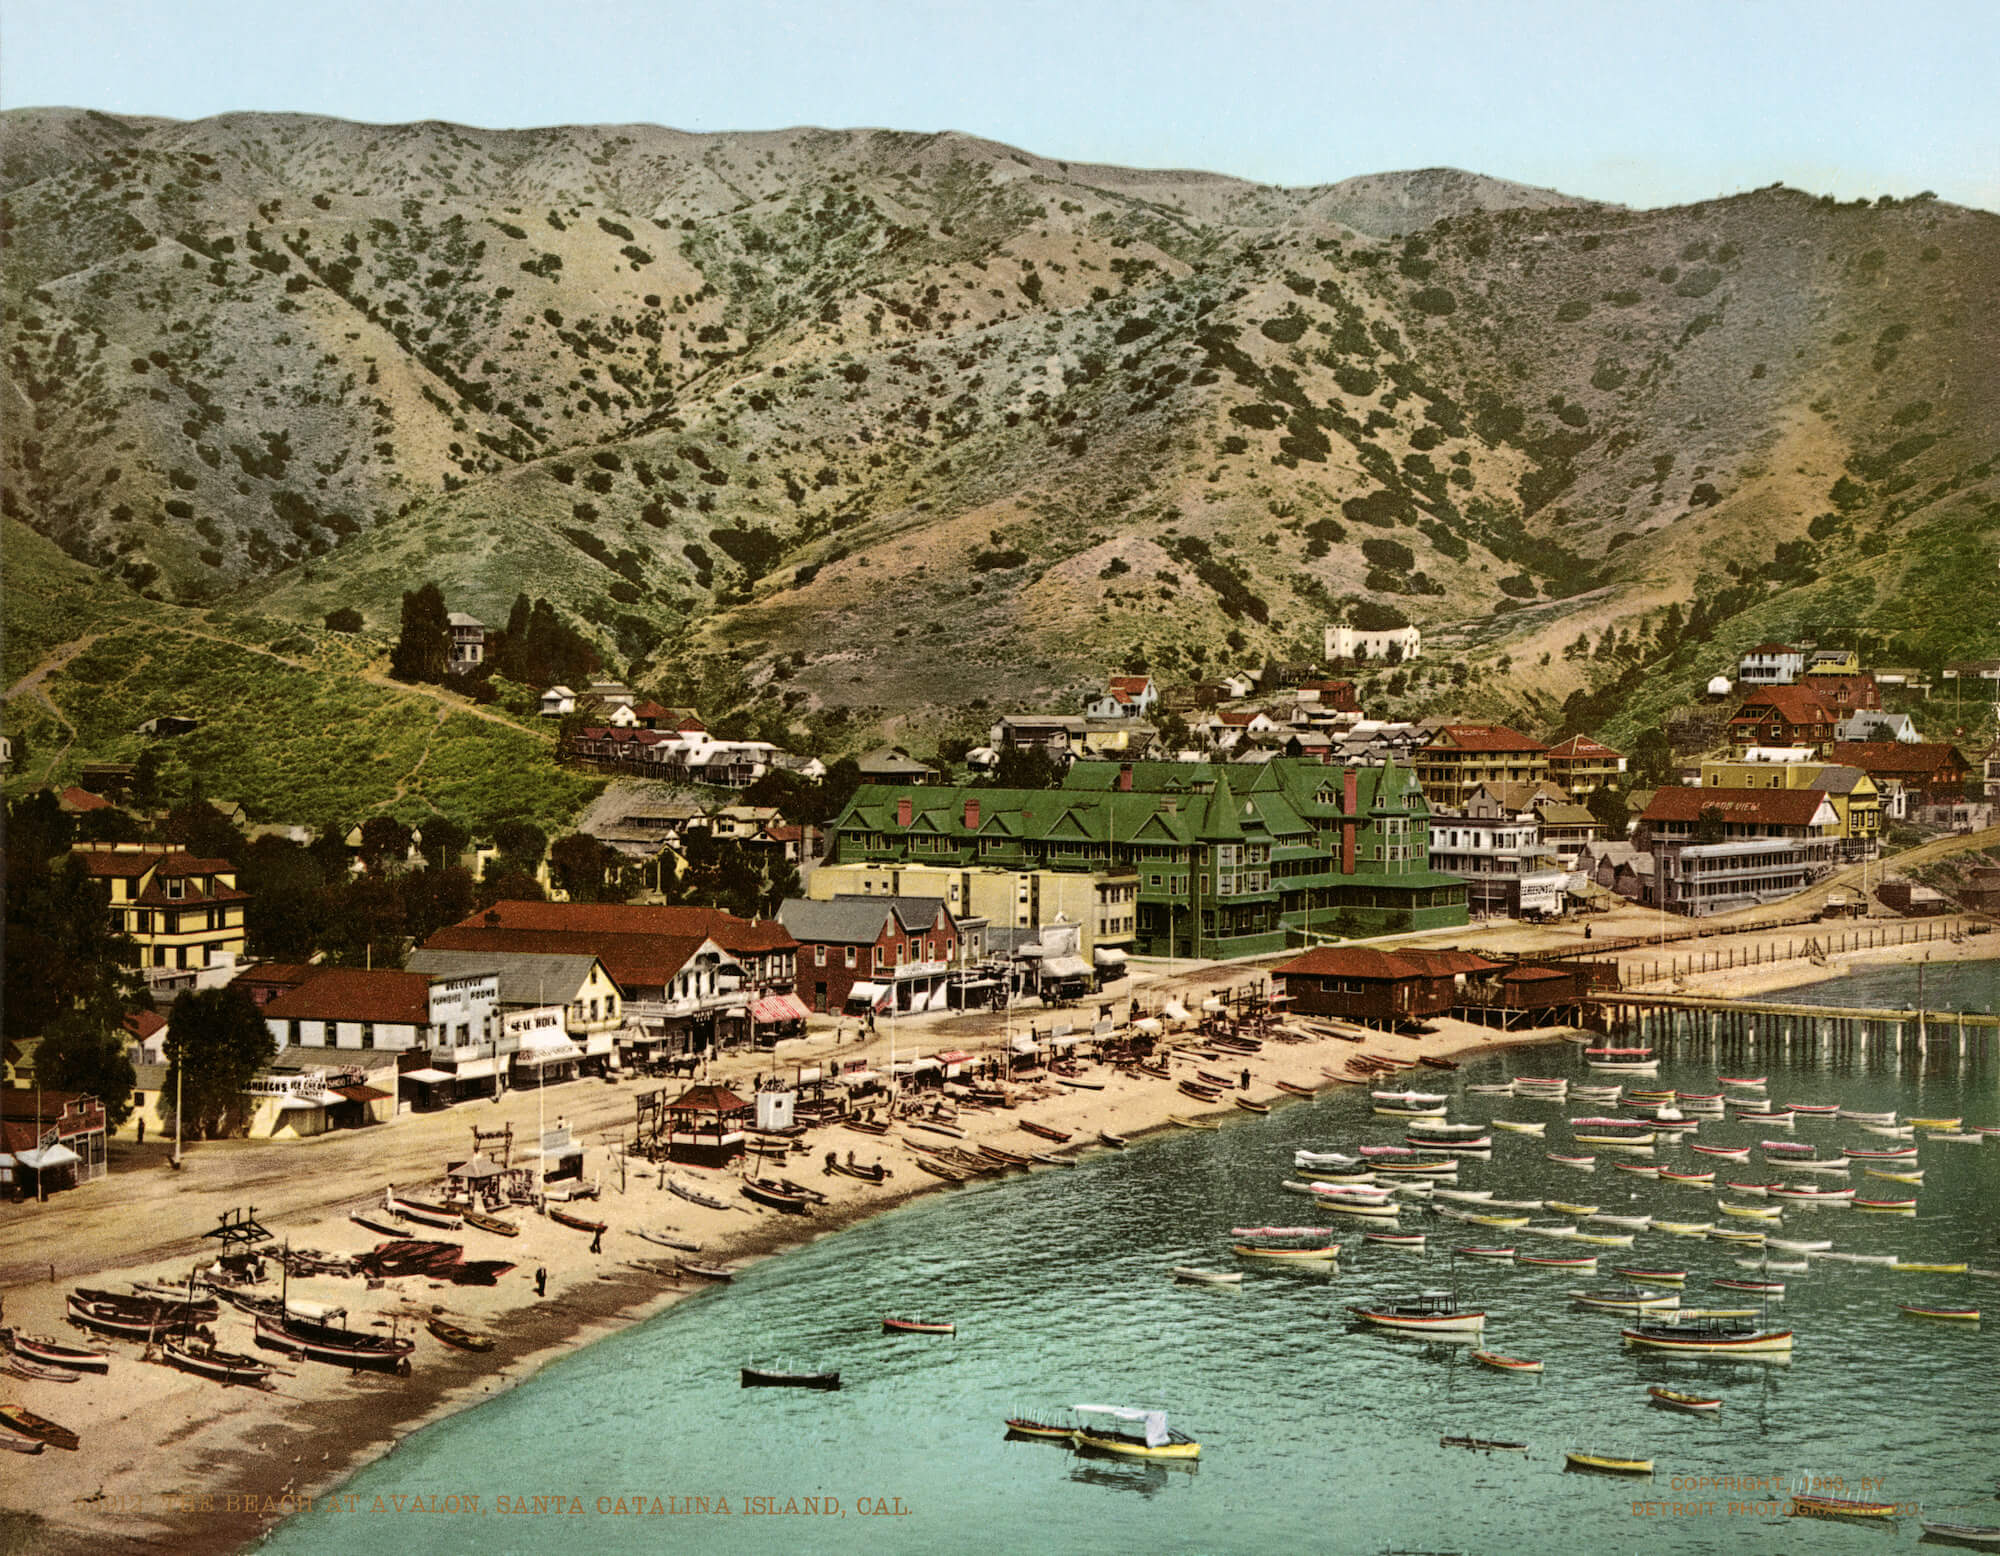 Avalon, Catalina Island California in 1903